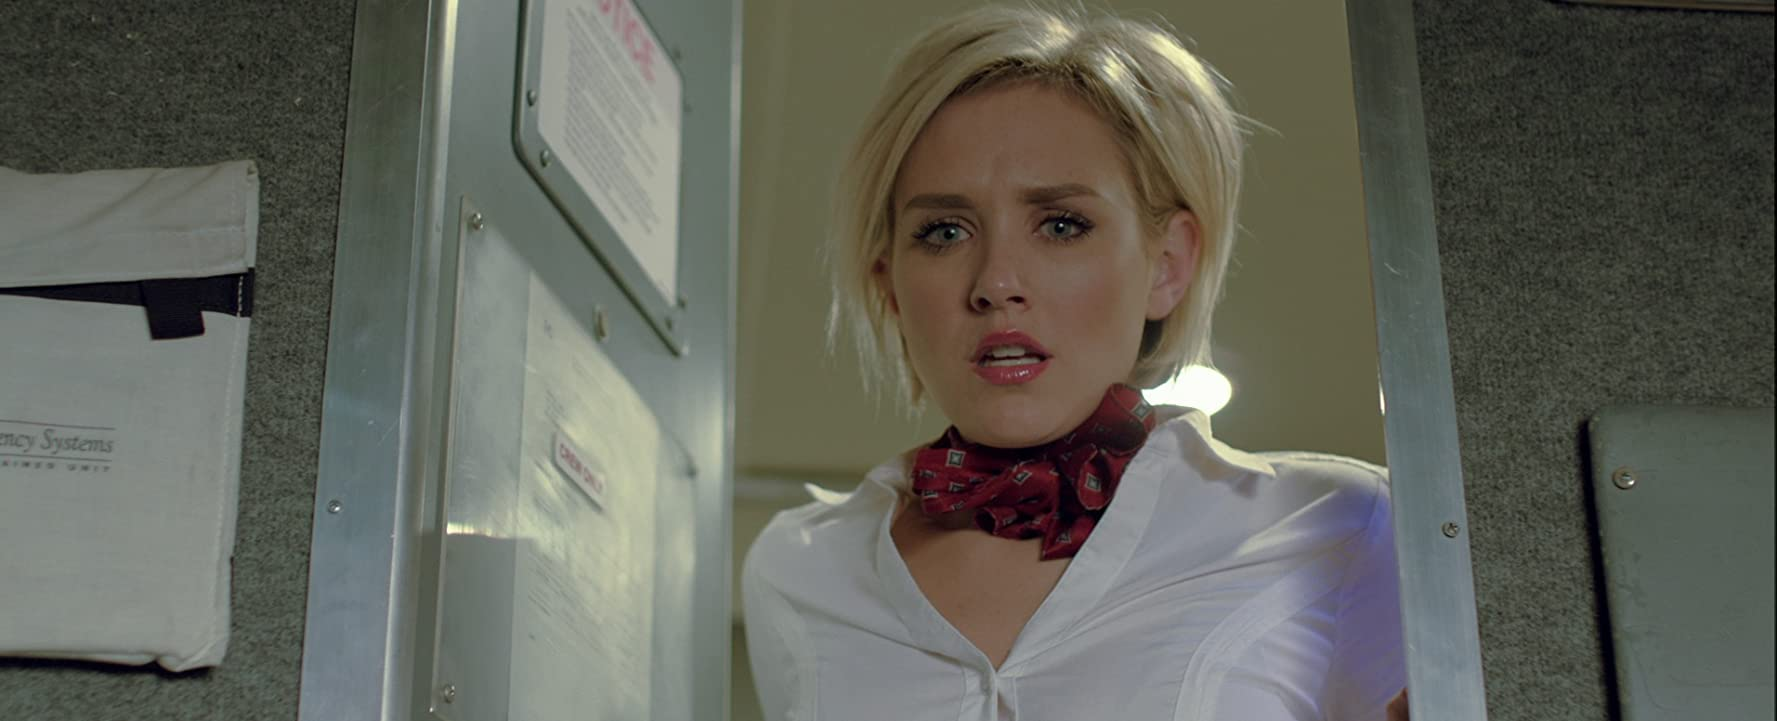 Gallery images and information nicky whelan hall pass gif - Gallery Images And Information Nicky Whelan Hall Pass Gif 32